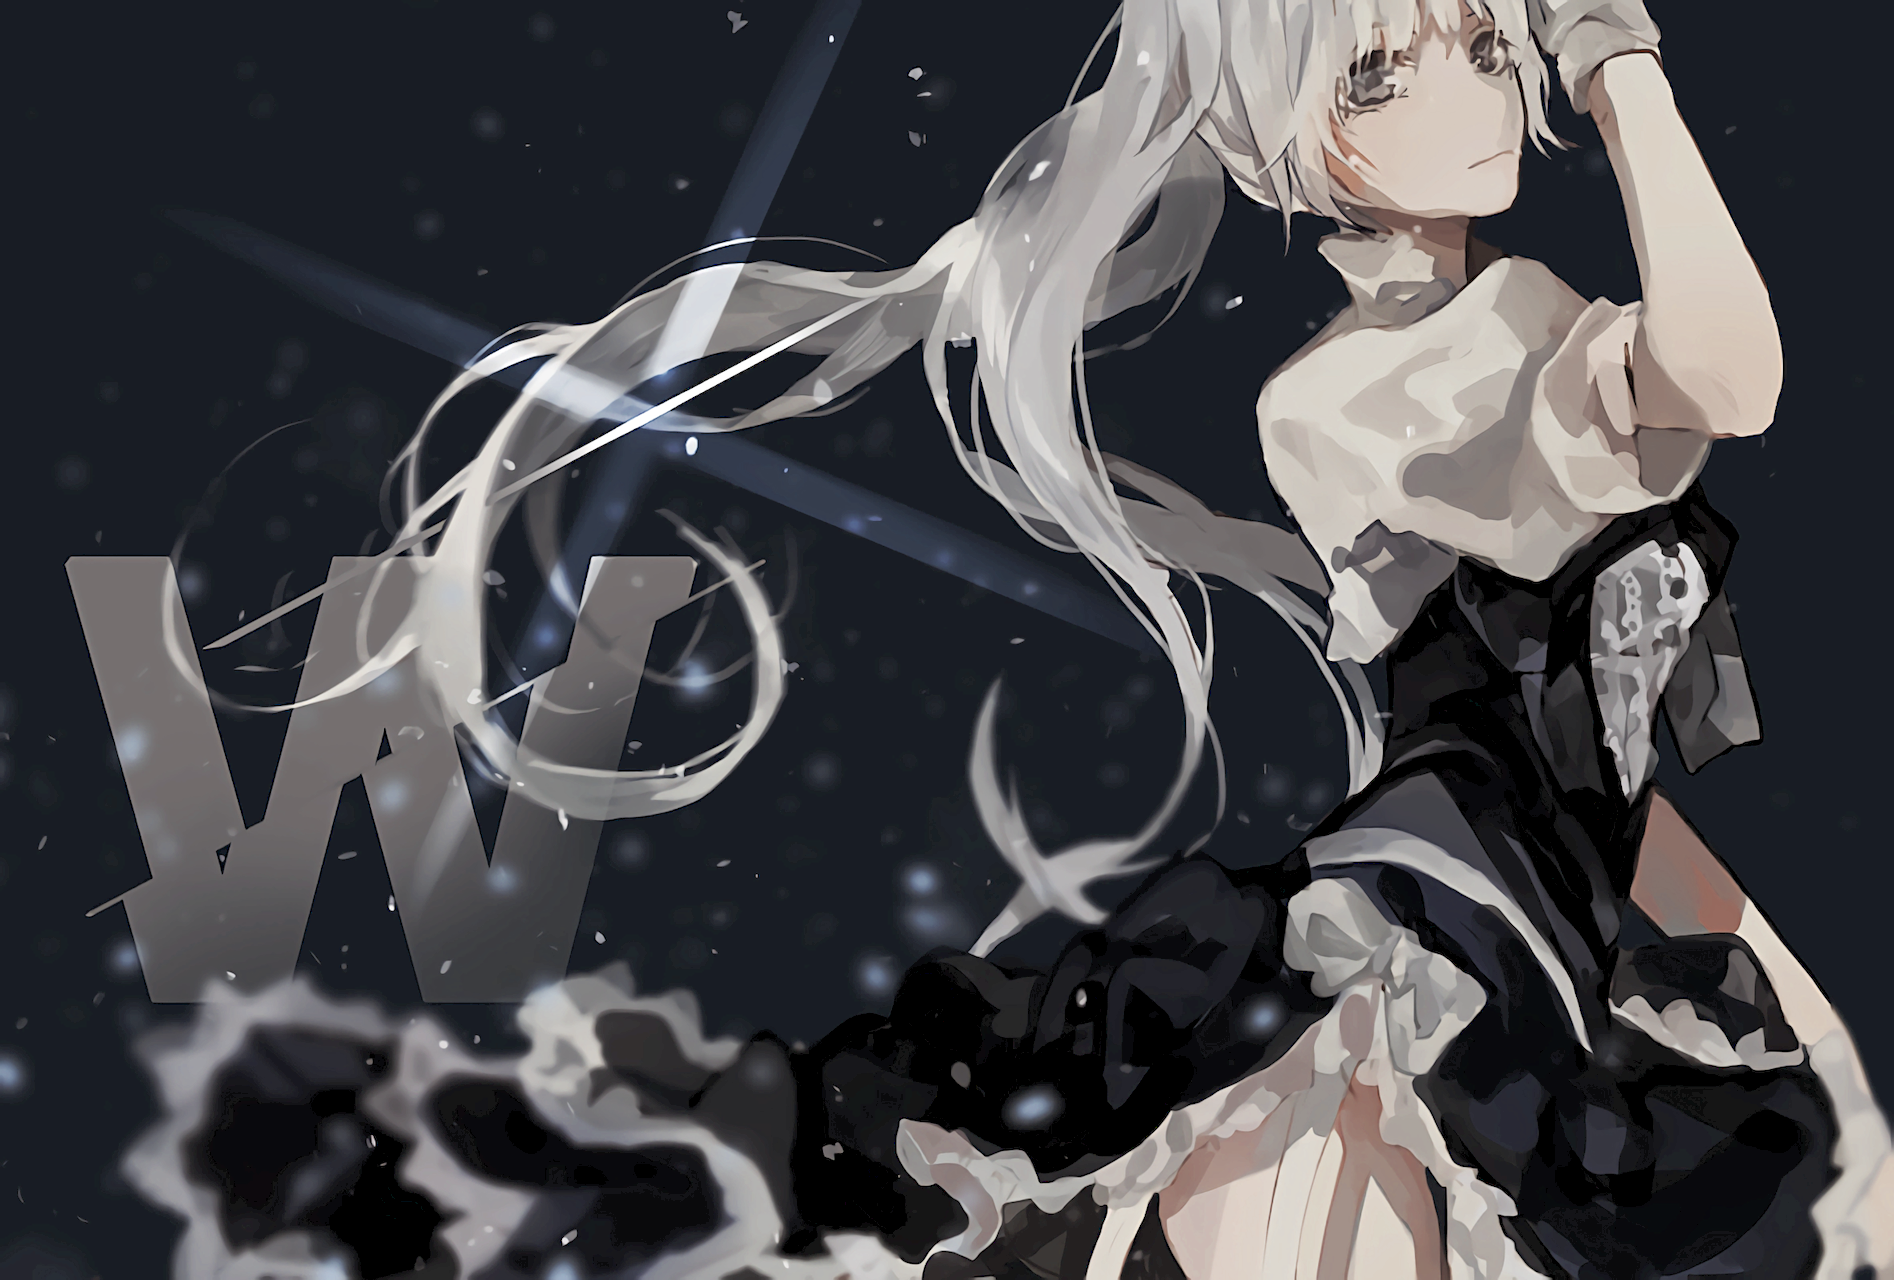 Weiss Computer Wallpapers Desktop Backgrounds 1894x1280 Id 552395 Rwby Anime Rwby Rwby Weiss